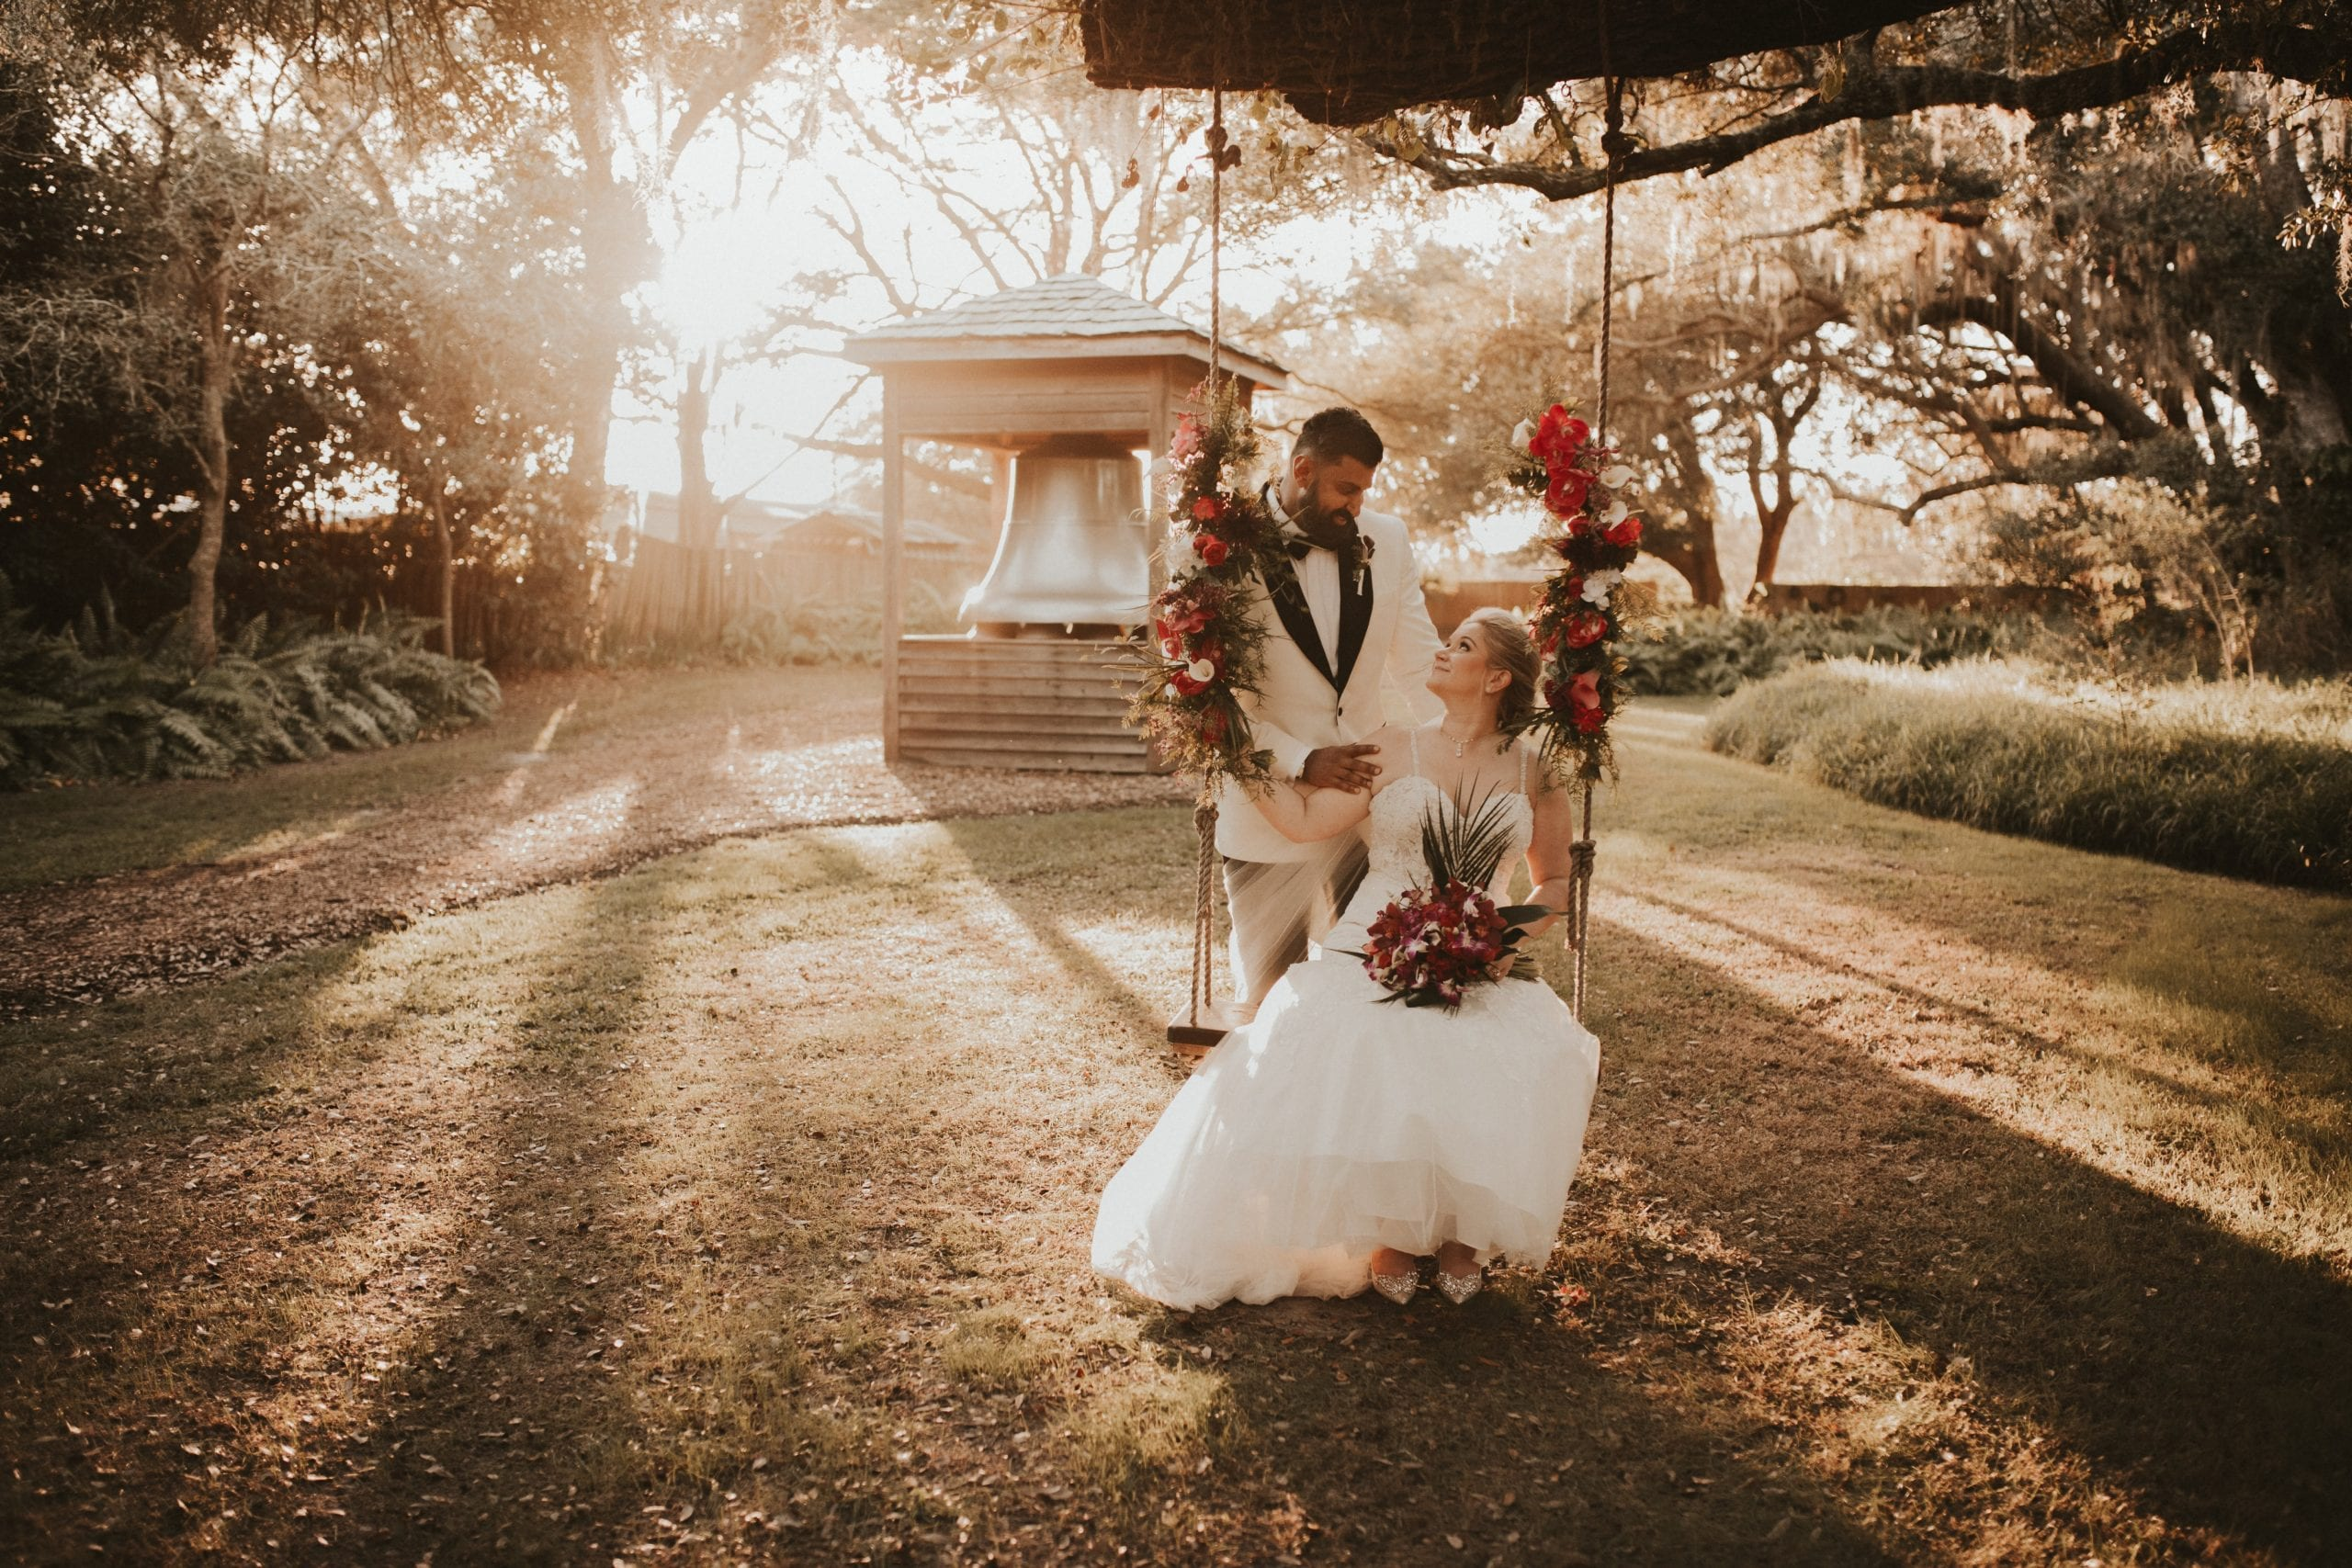 Sadie & Kiran's Tropical Hindu Wedding